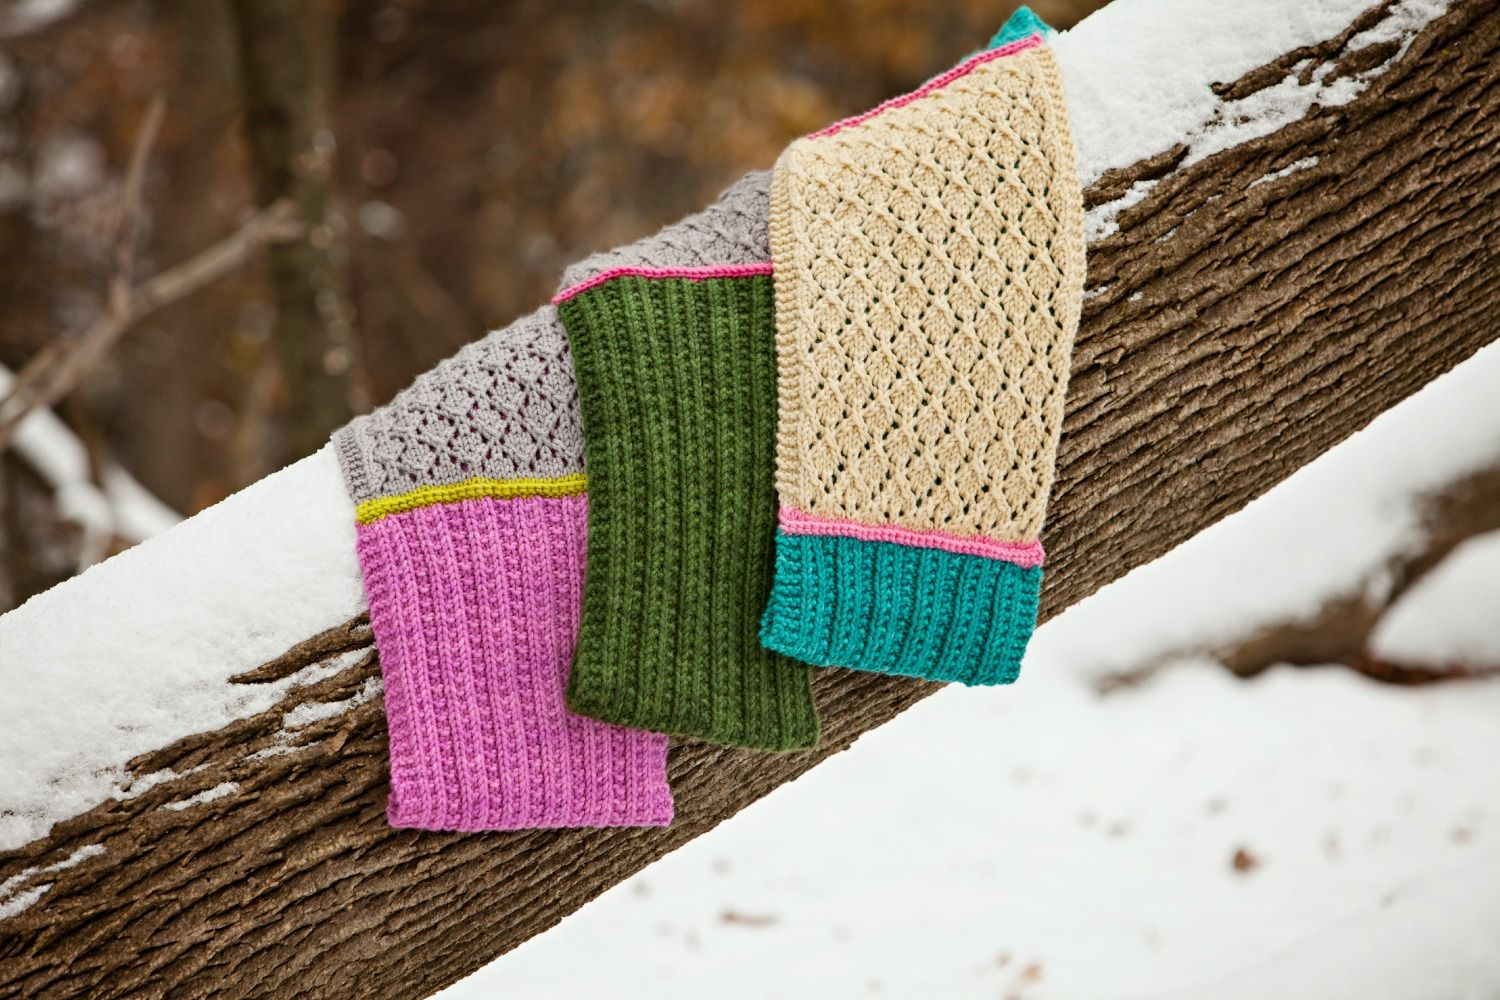 http://www.ravelry.com/patterns/library/sugarloaf